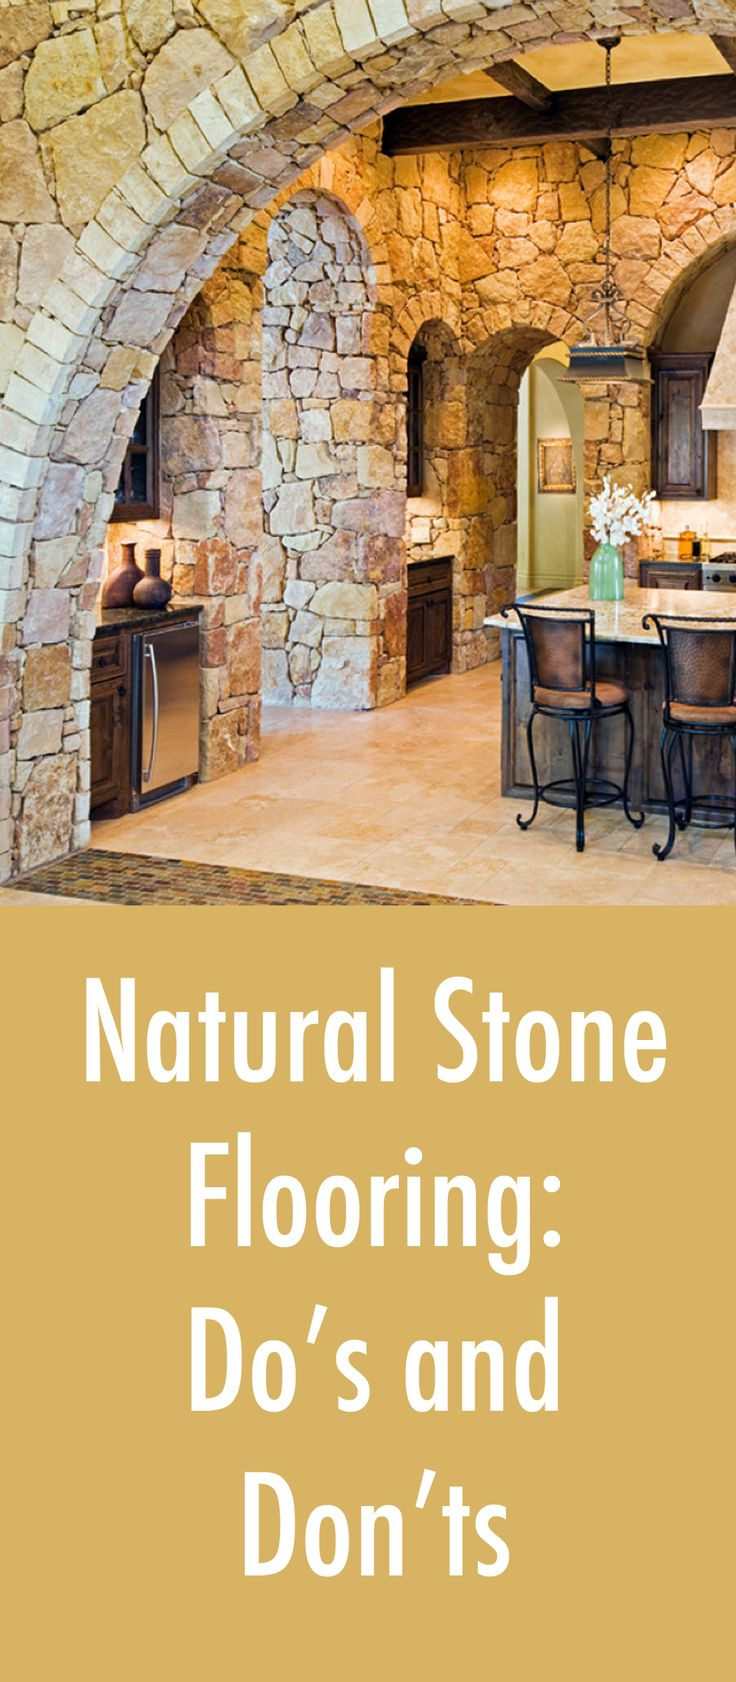 Installing Natural Stone Flooring In Your Home Click Here For The Dos And Don